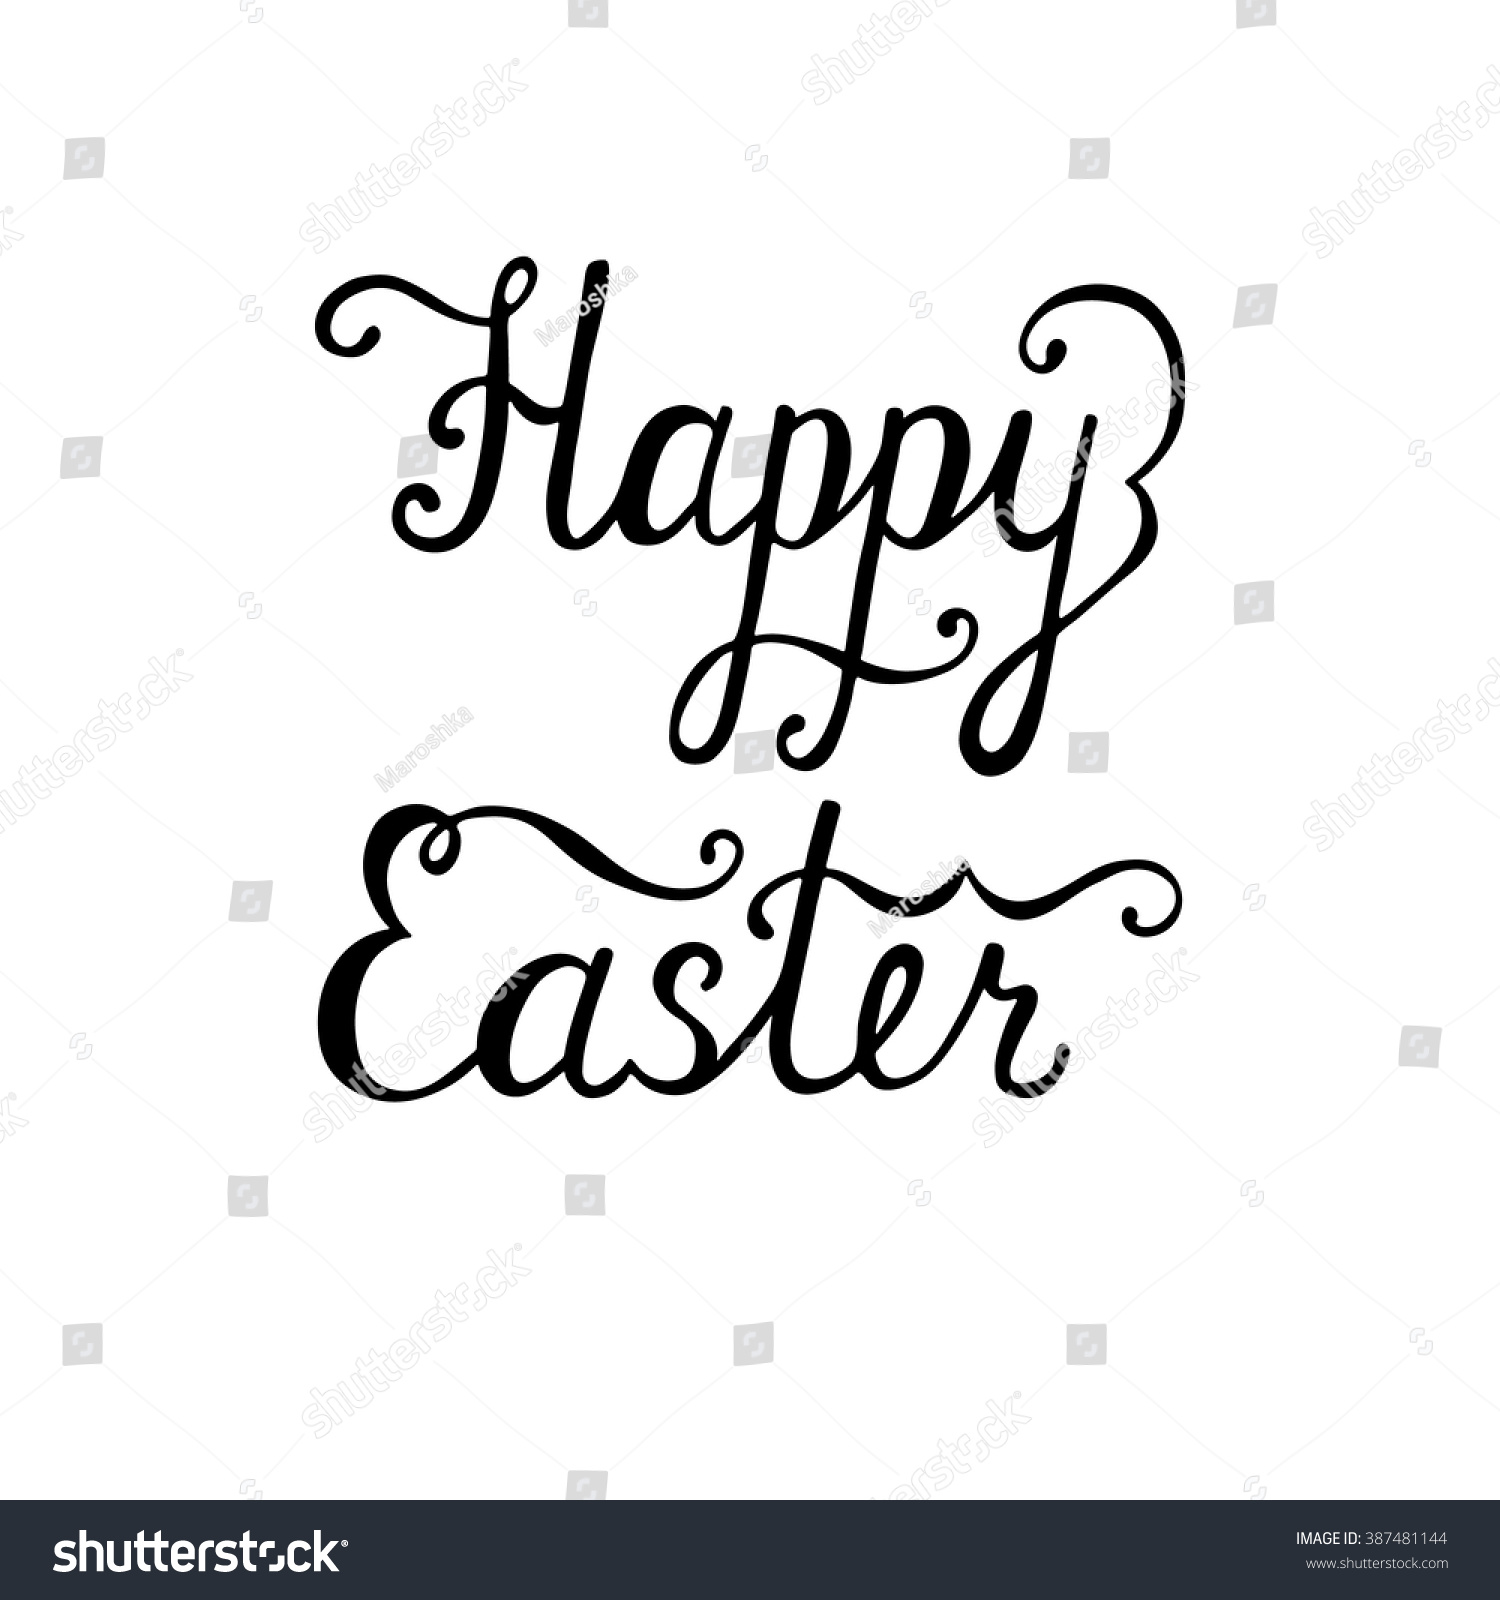 Happy easter typographic background calligraphic